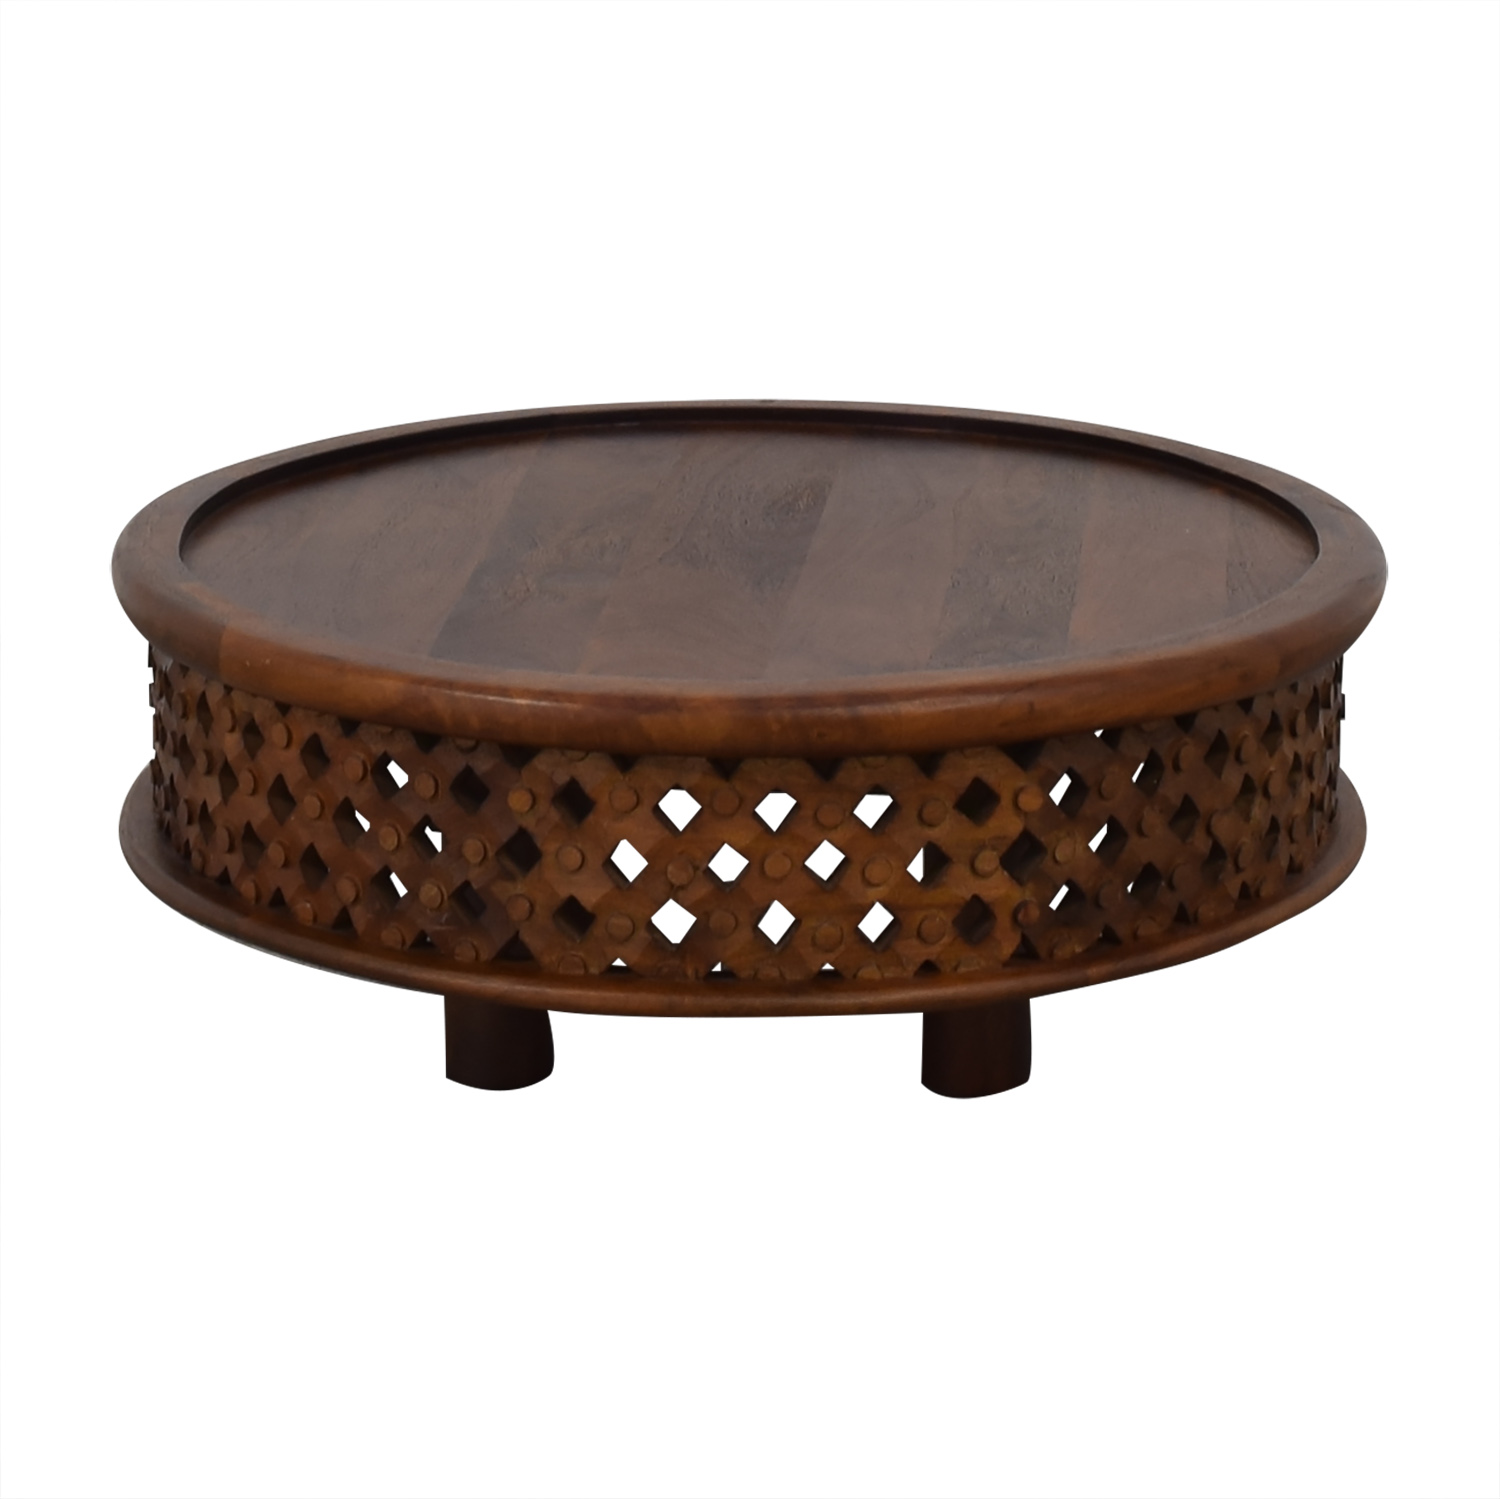 West Elm West Elm Carved Wood Coffee Table on sale